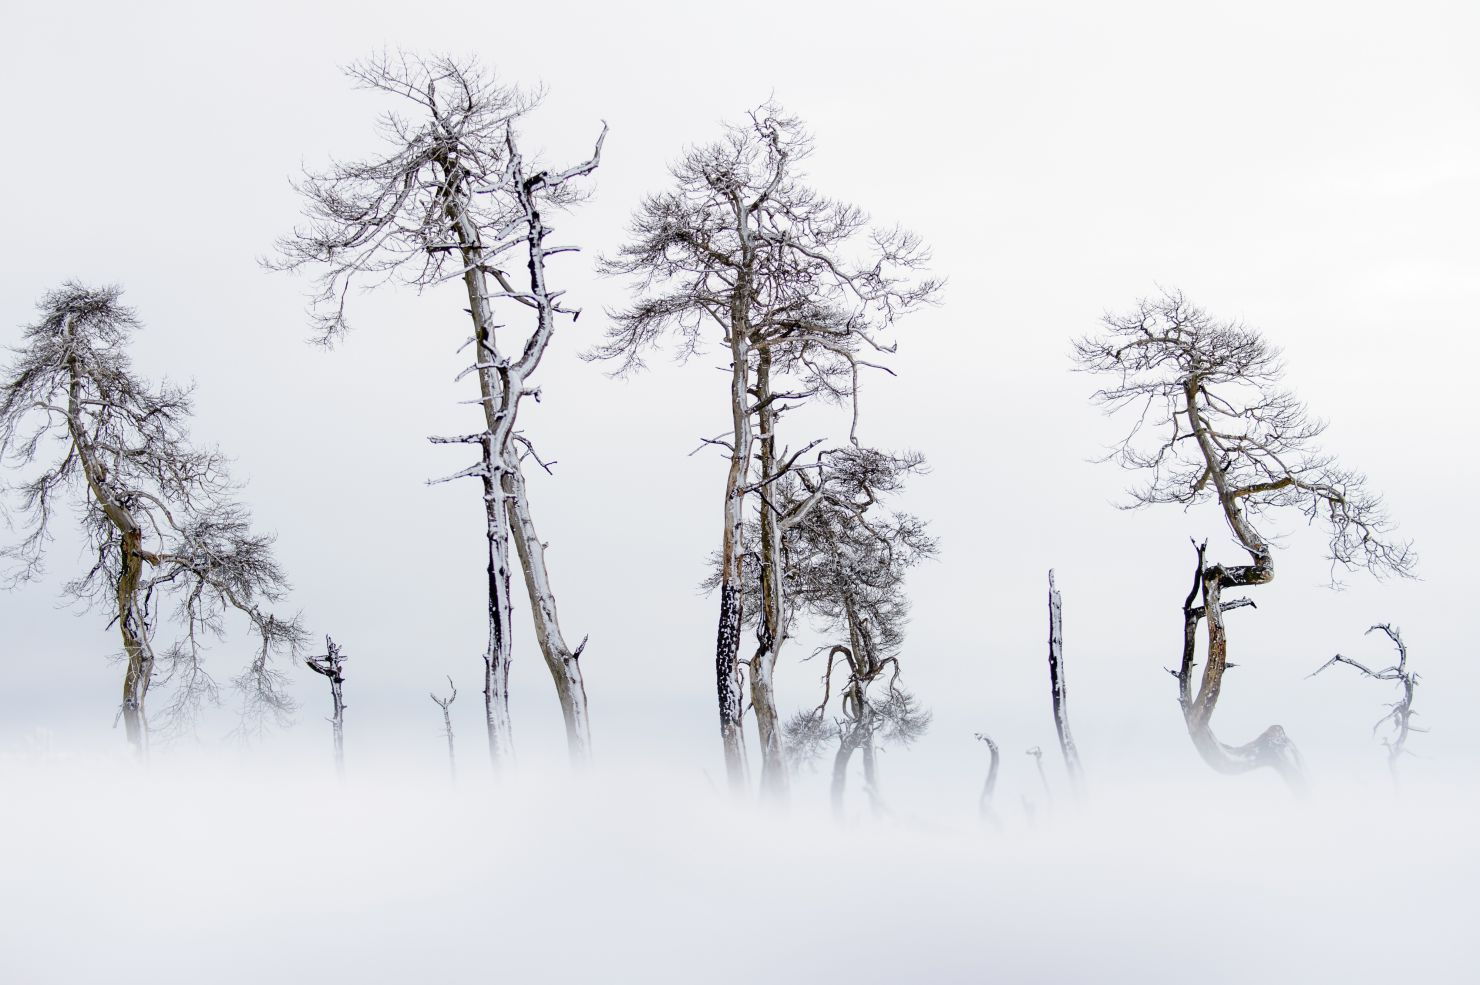 Dead pines in snow landscape